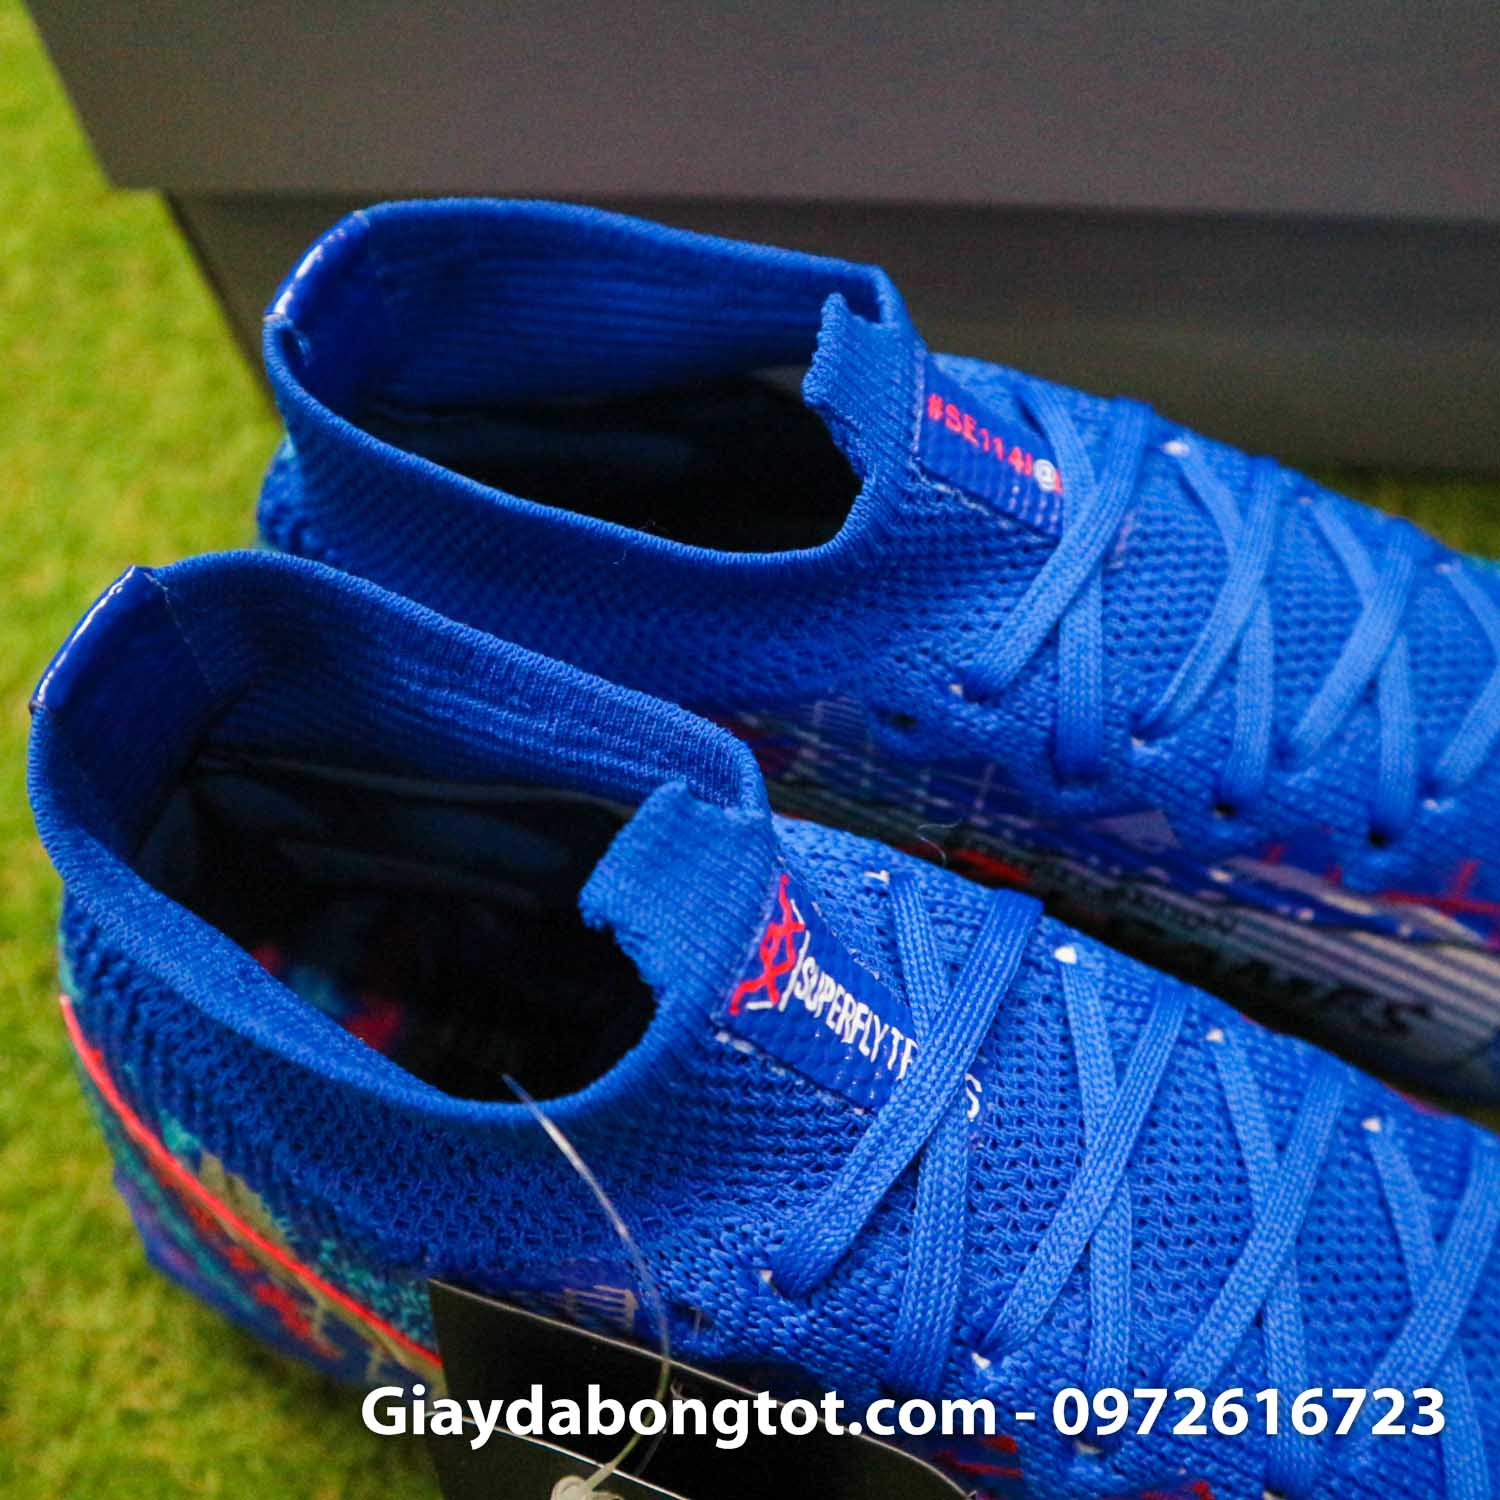 Nike mercurial superfly 7 elite tf xanh duong sancho se11 (11)